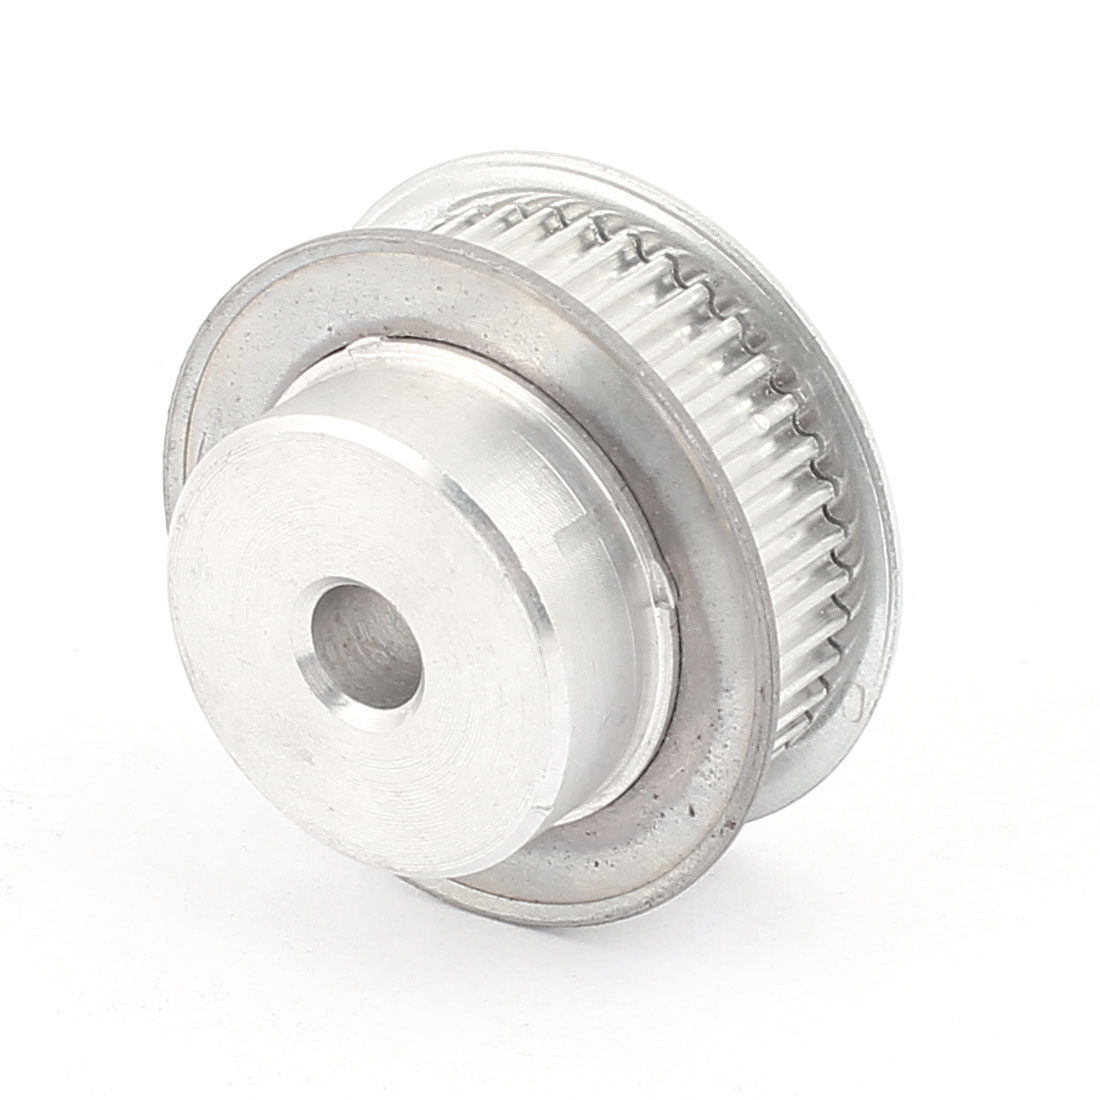 8mm Bore 42 Teeth Timing Pulley for CNC Engraving Machine